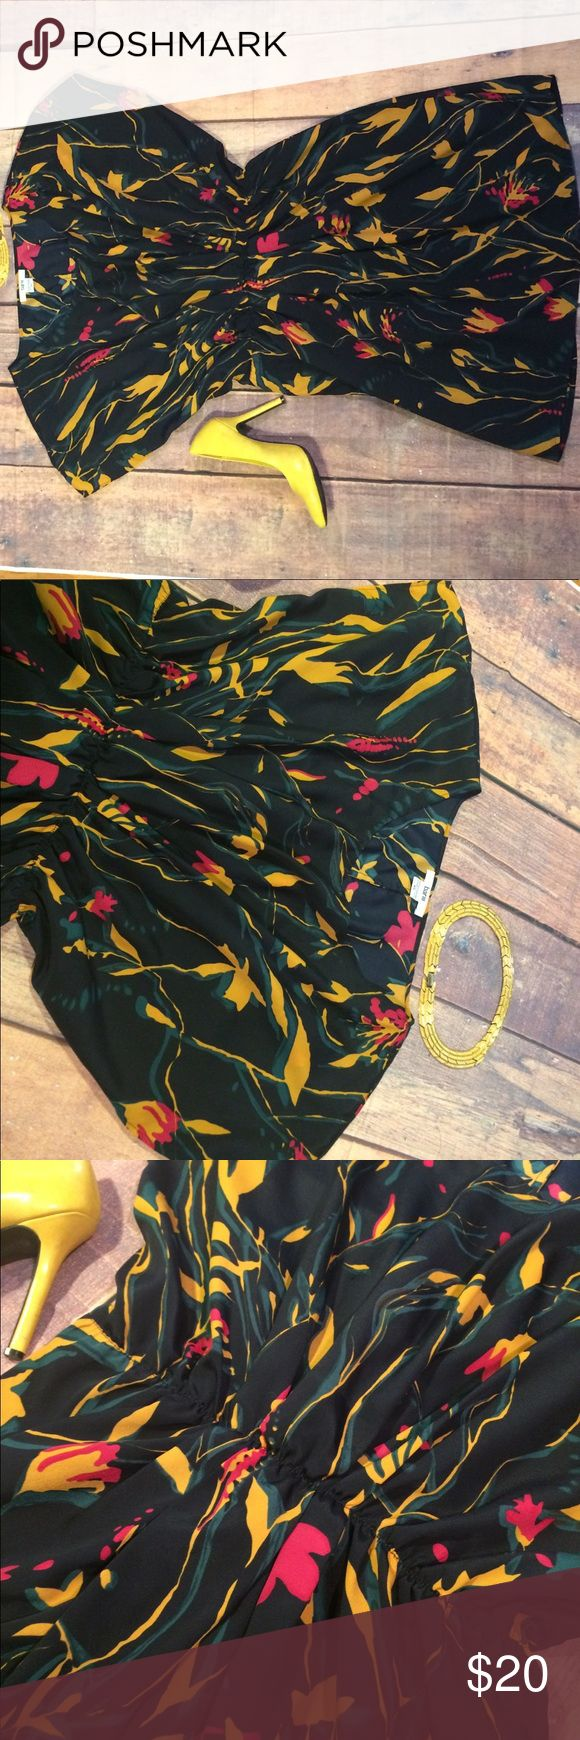 Bar III size XS Tropical Butterfly Arm Dress Bar III in excellent preowned condition. The dress is cinched at the waist and has wide arms that connect at the waist. Bar III Dresses